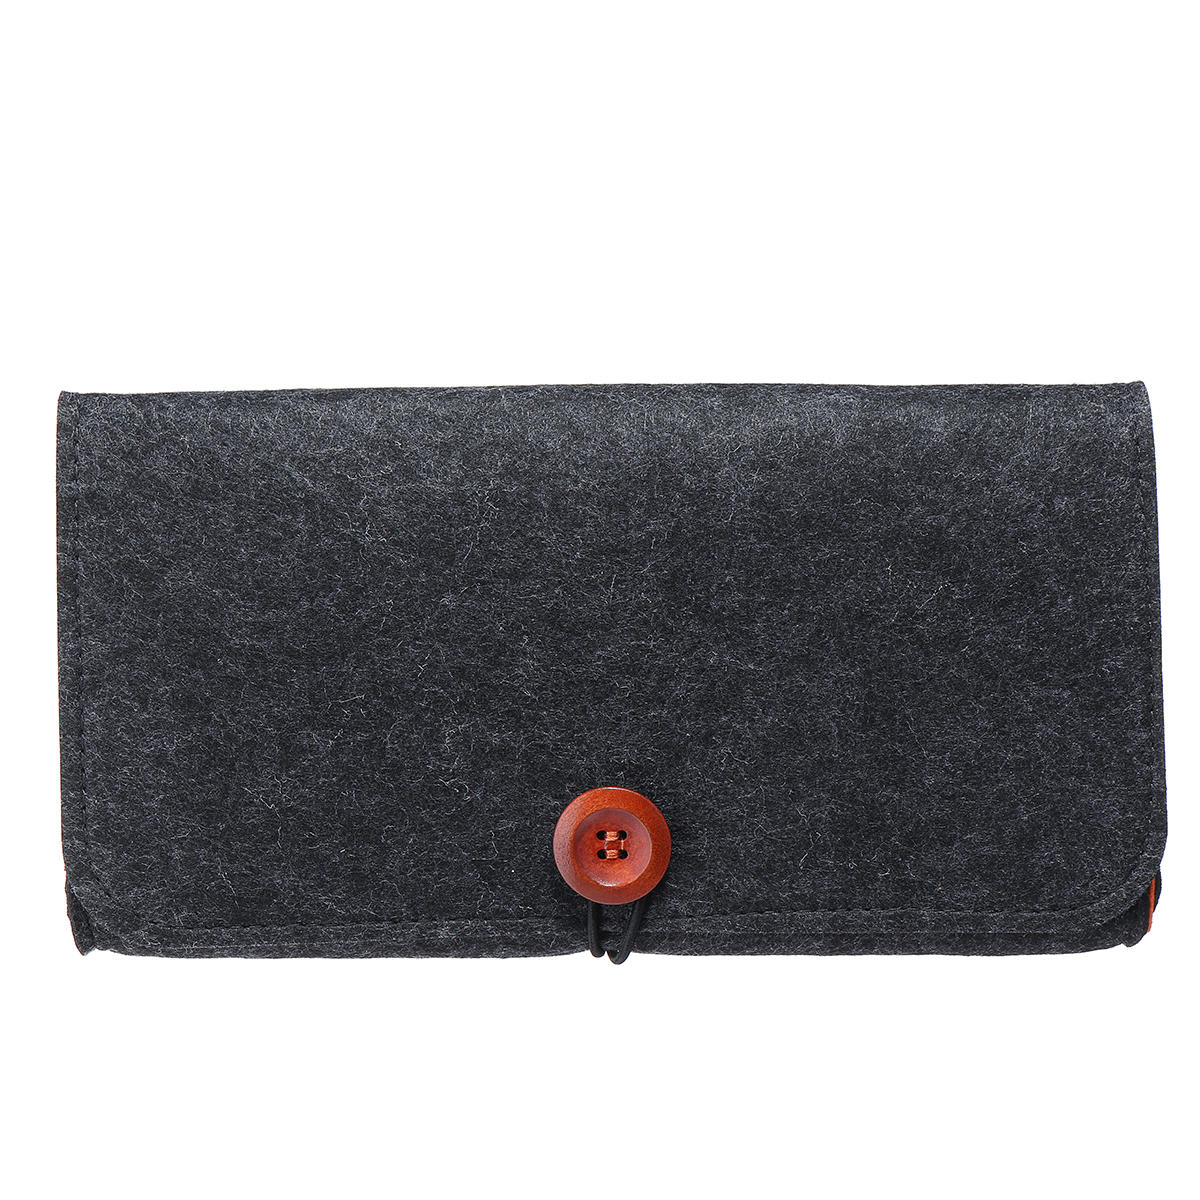 Felt Storage Soft Travel Protective Portable Case Cover Bag For Nintendo Switch